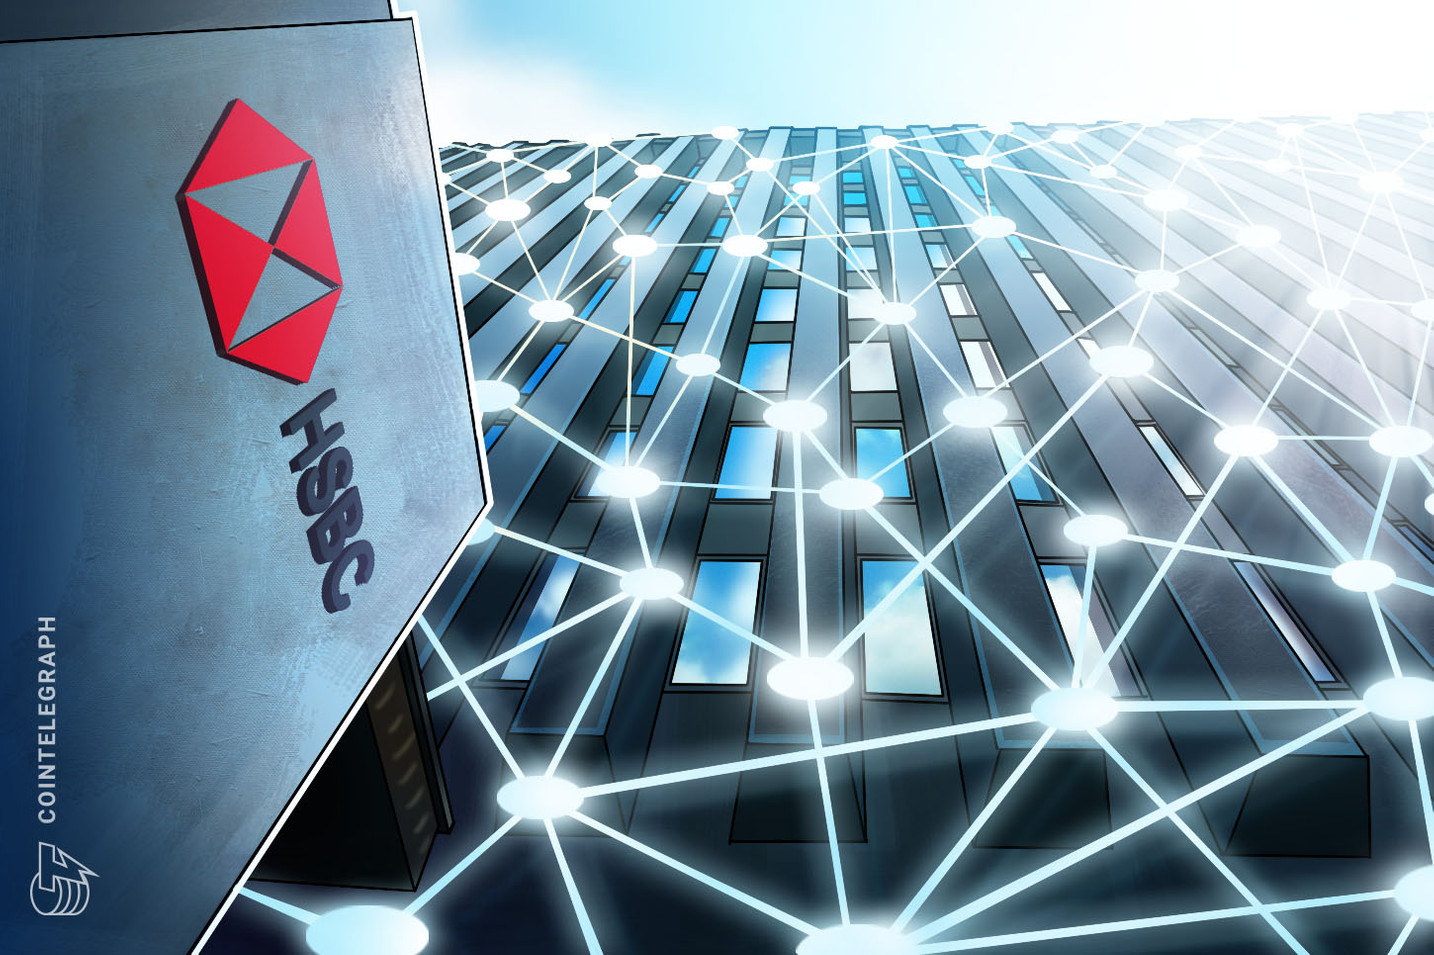 HSBC Bangladesh uses blockchain to import 20,000 tons of fuel oil from Singapore